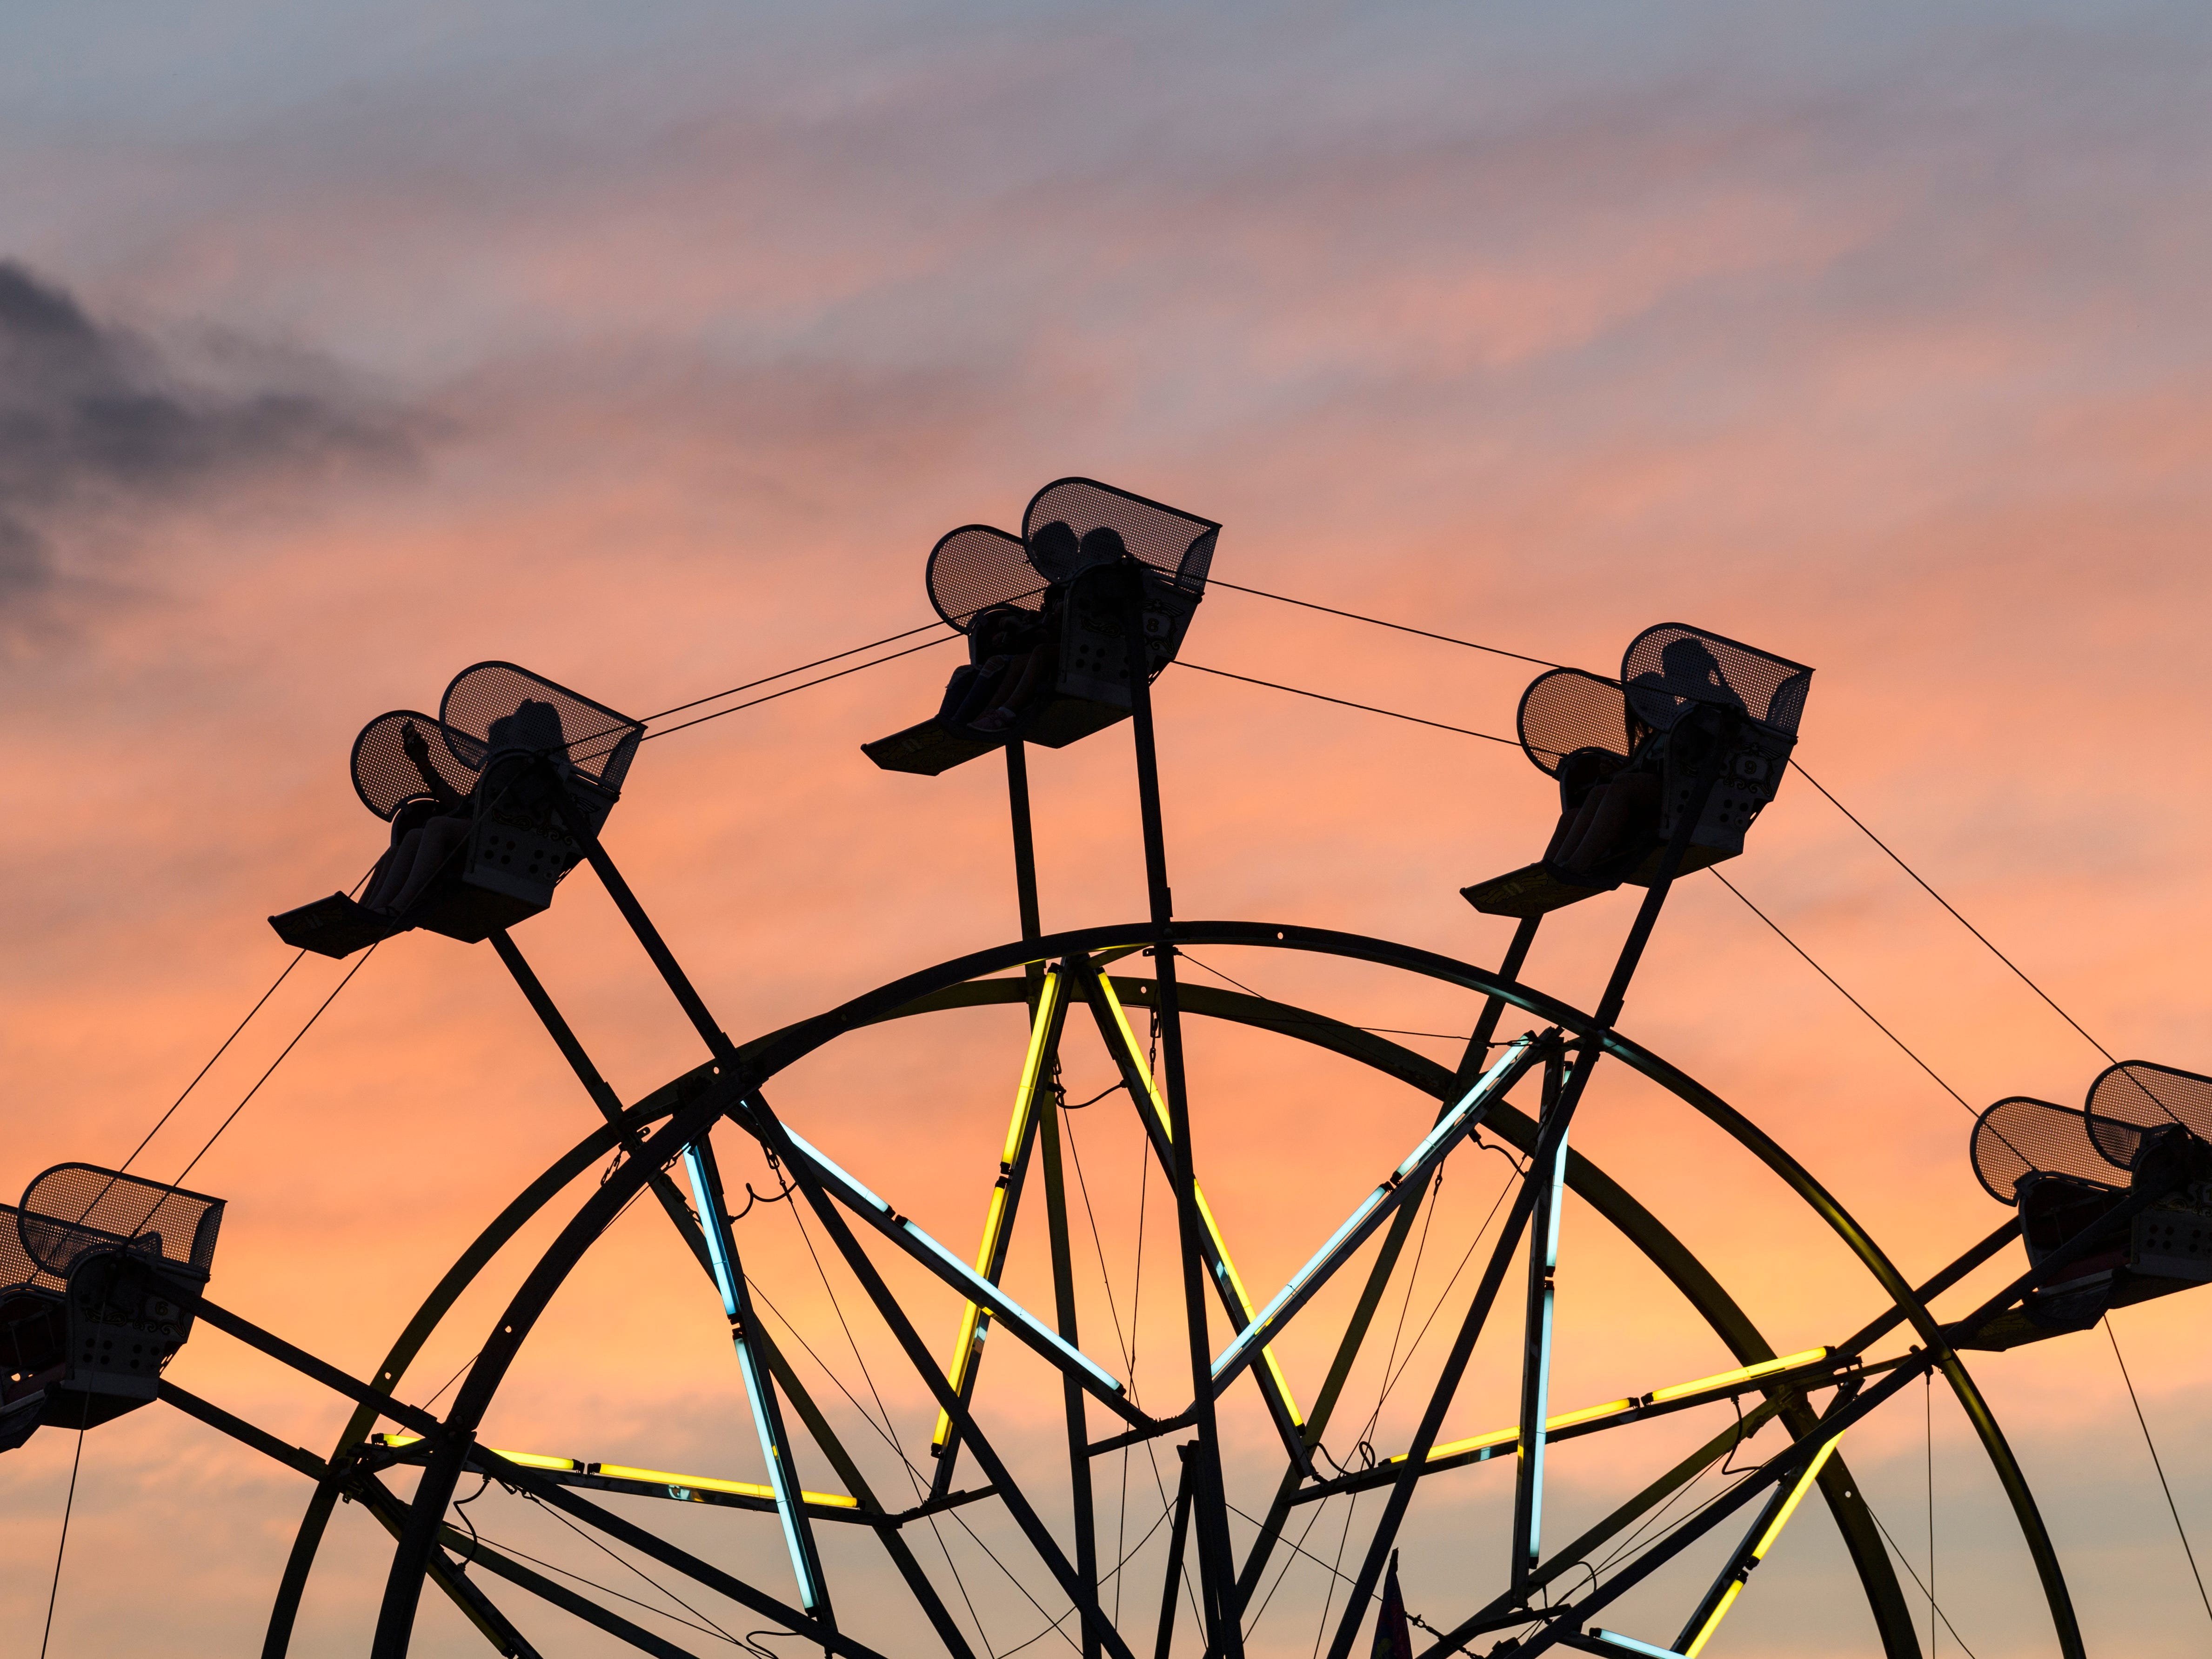 Fair-goers go round-and-round on the Ferris wheel as the sun sets behind them on the last day of the Vanderburgh County Fair in Evansville, Ind., Saturday, July 28, 2018.